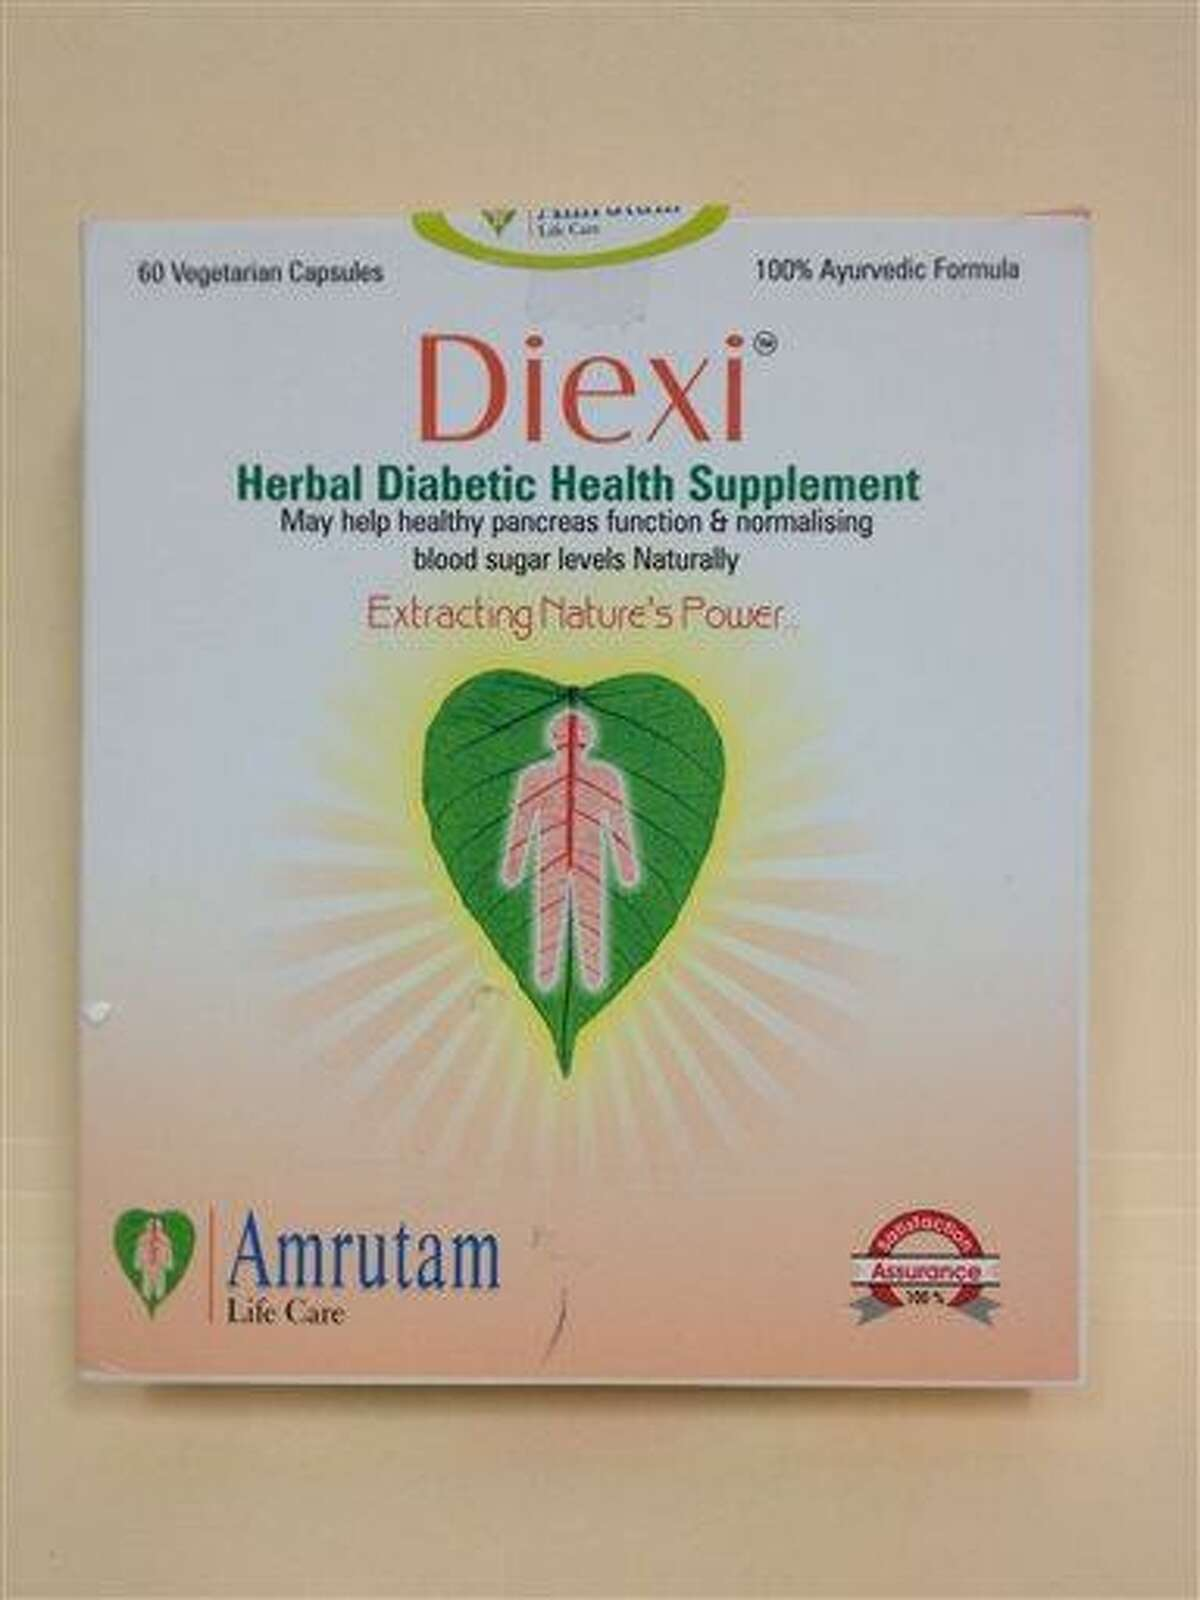 This undated photo provided by The Food and Drug Administration (FDA) shows Diexi, which is sold as a traditional Indian